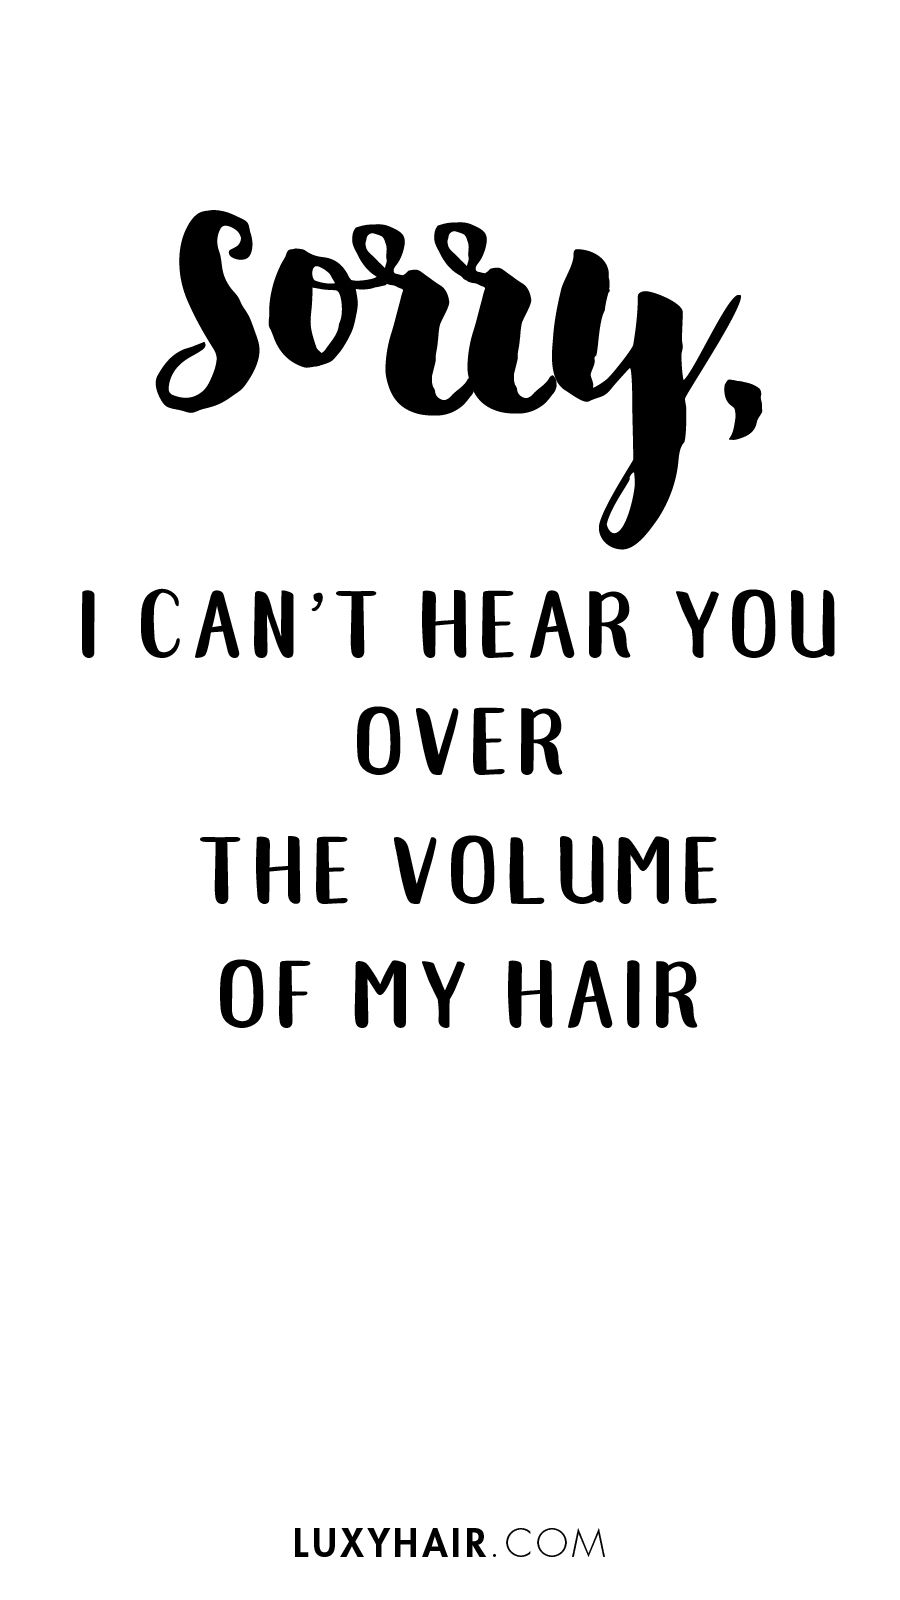 Pin By Luxy Hair On Motivational Quotes Hair Quotes Funny Hair Quotes Hairstylist Quotes